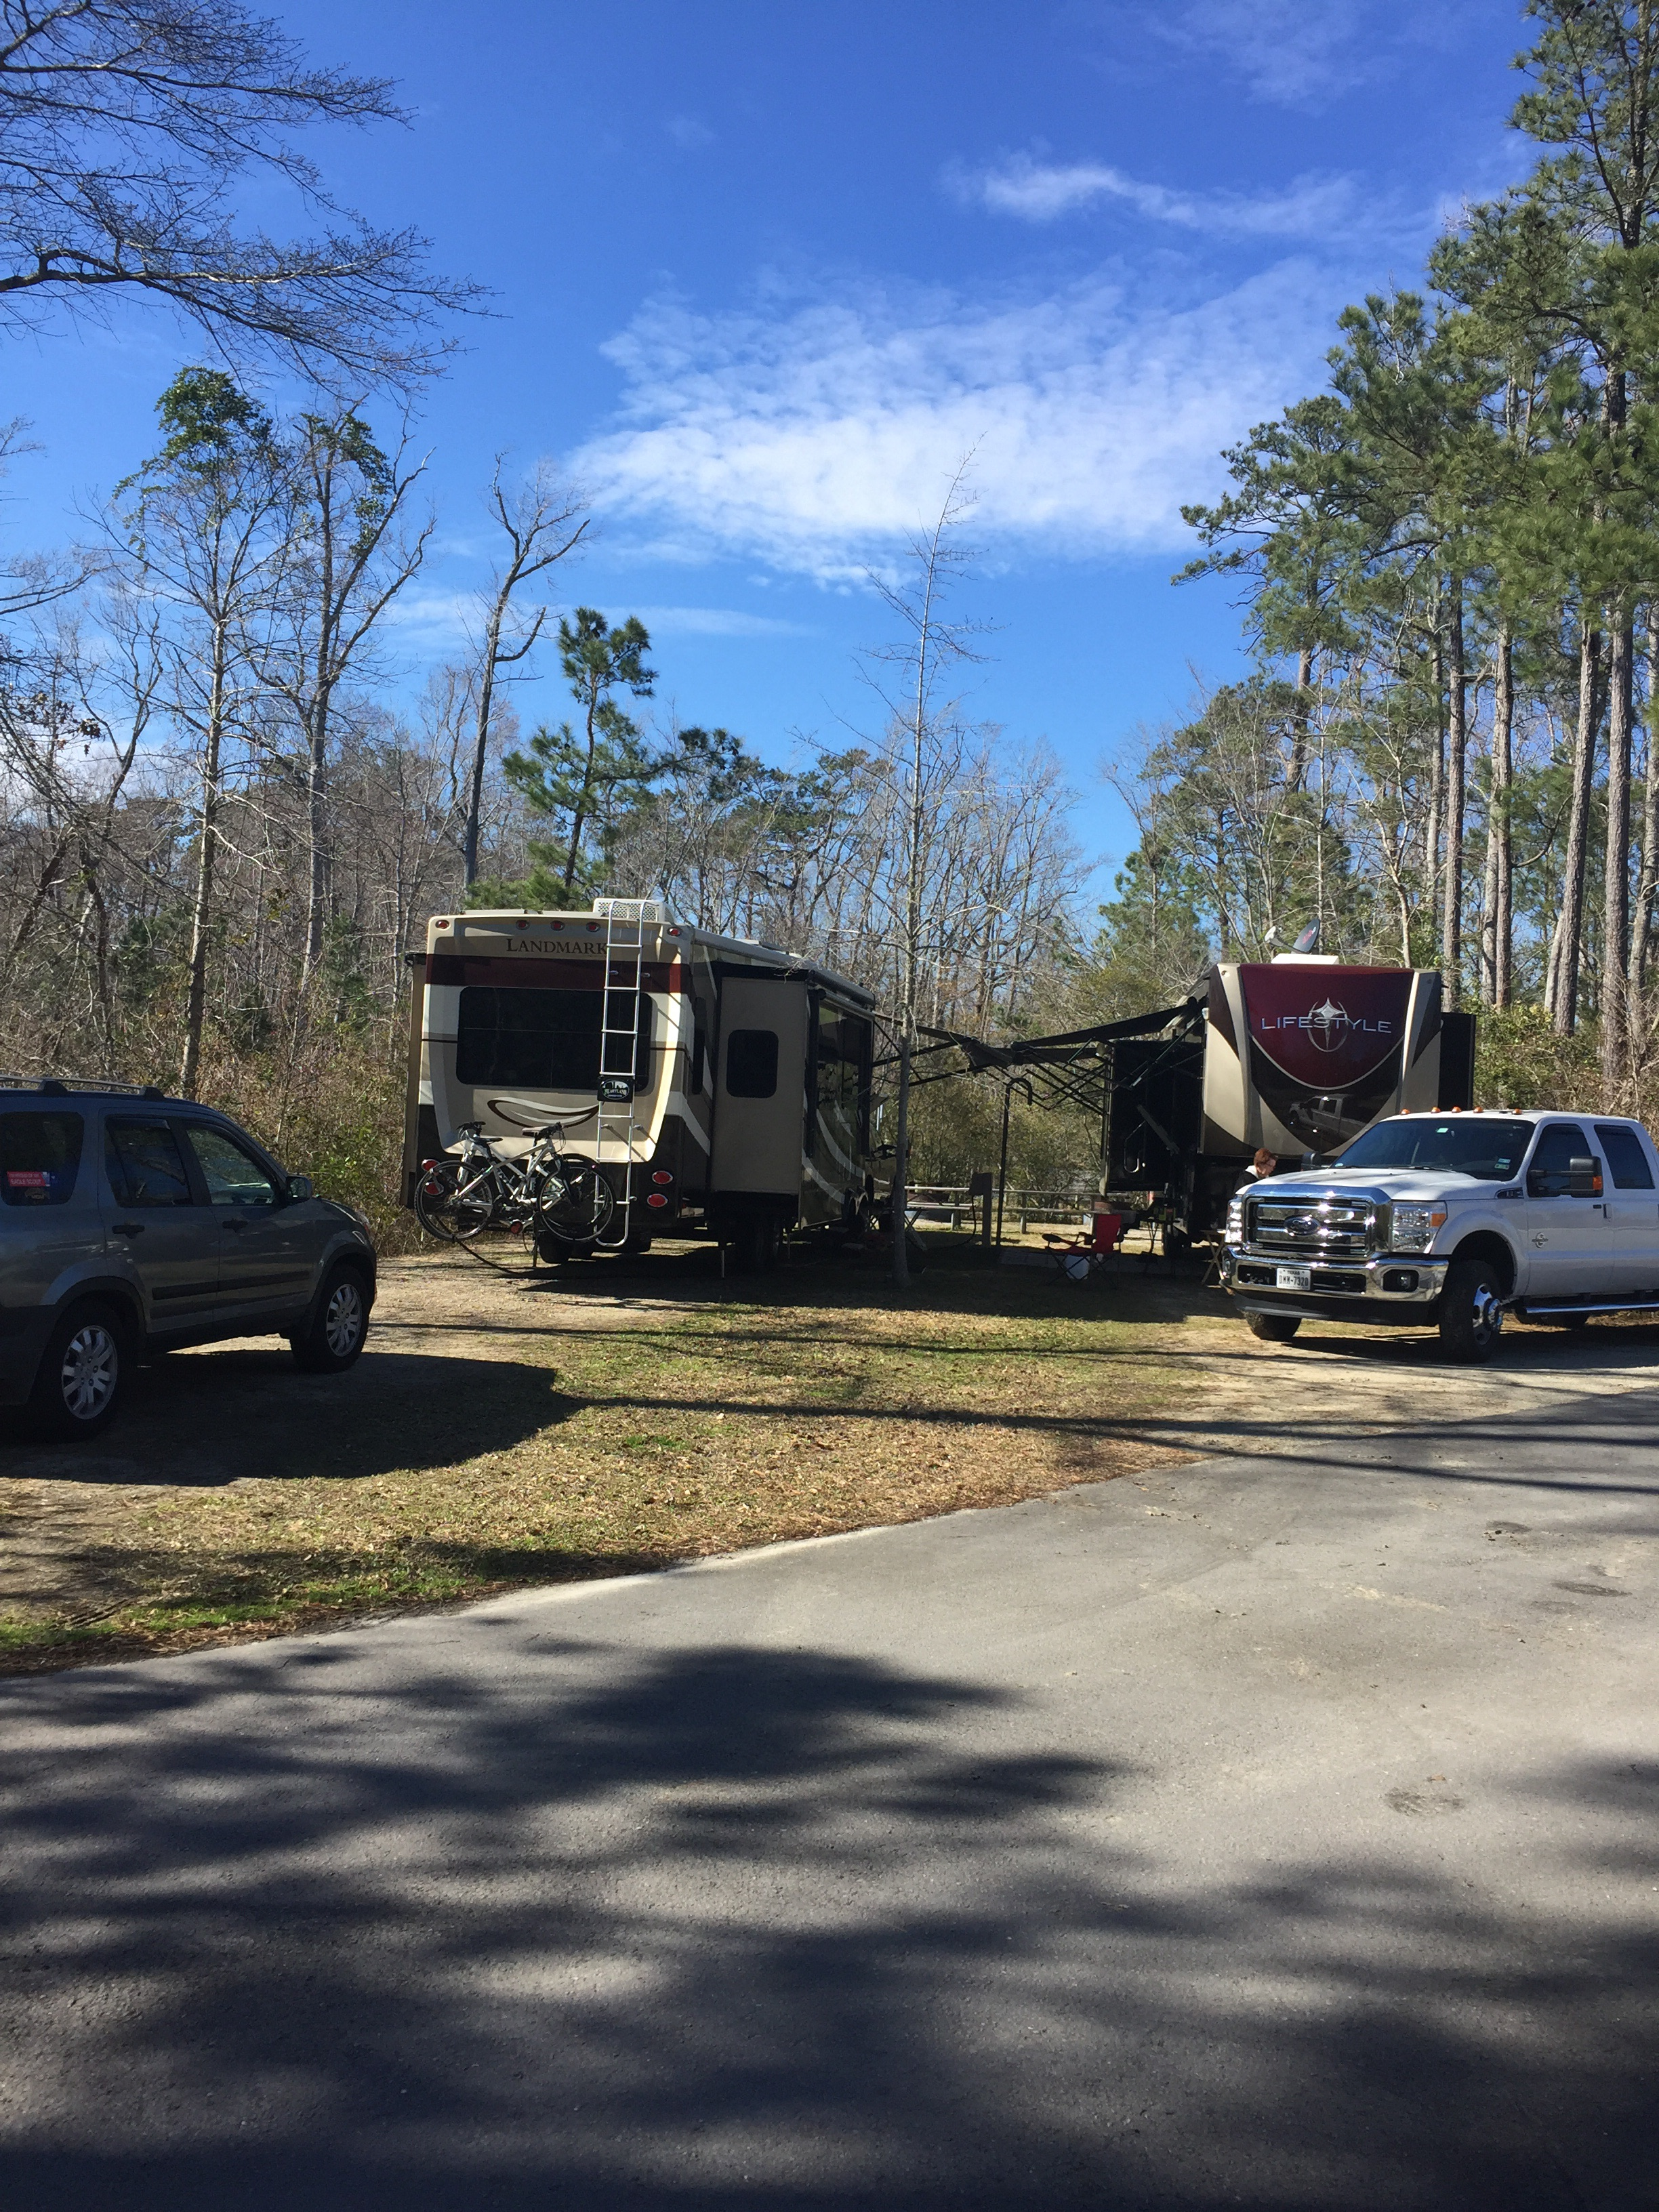 New Bern Flanners Beach Campground March April 2015 Bill